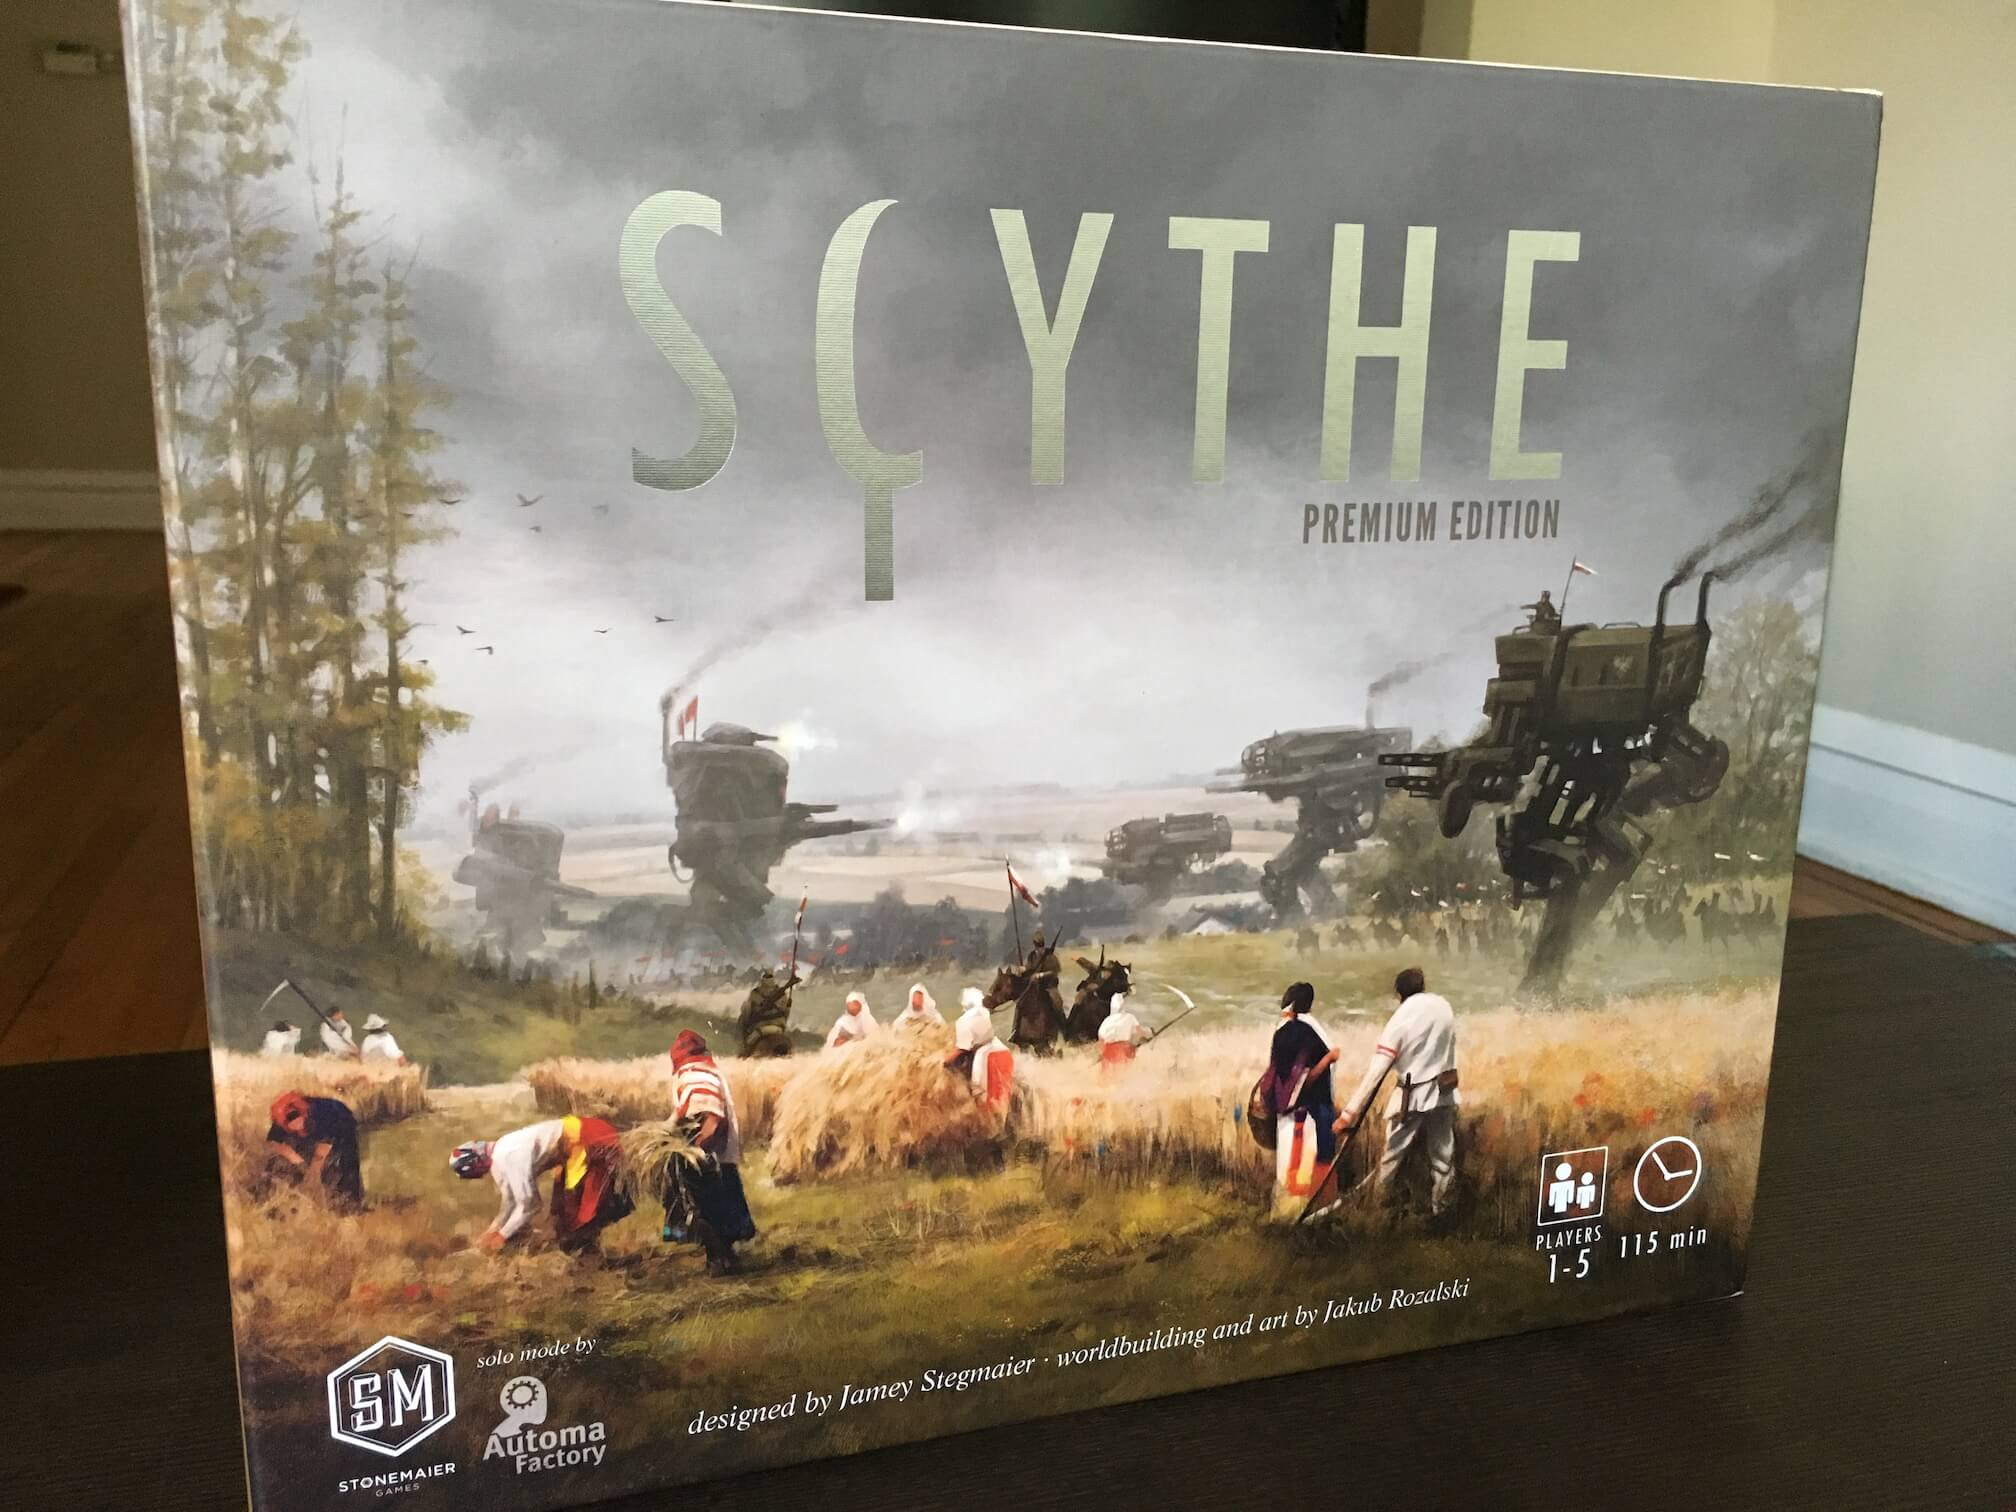 Scythe review: The most-hyped board game of 2016 delivers